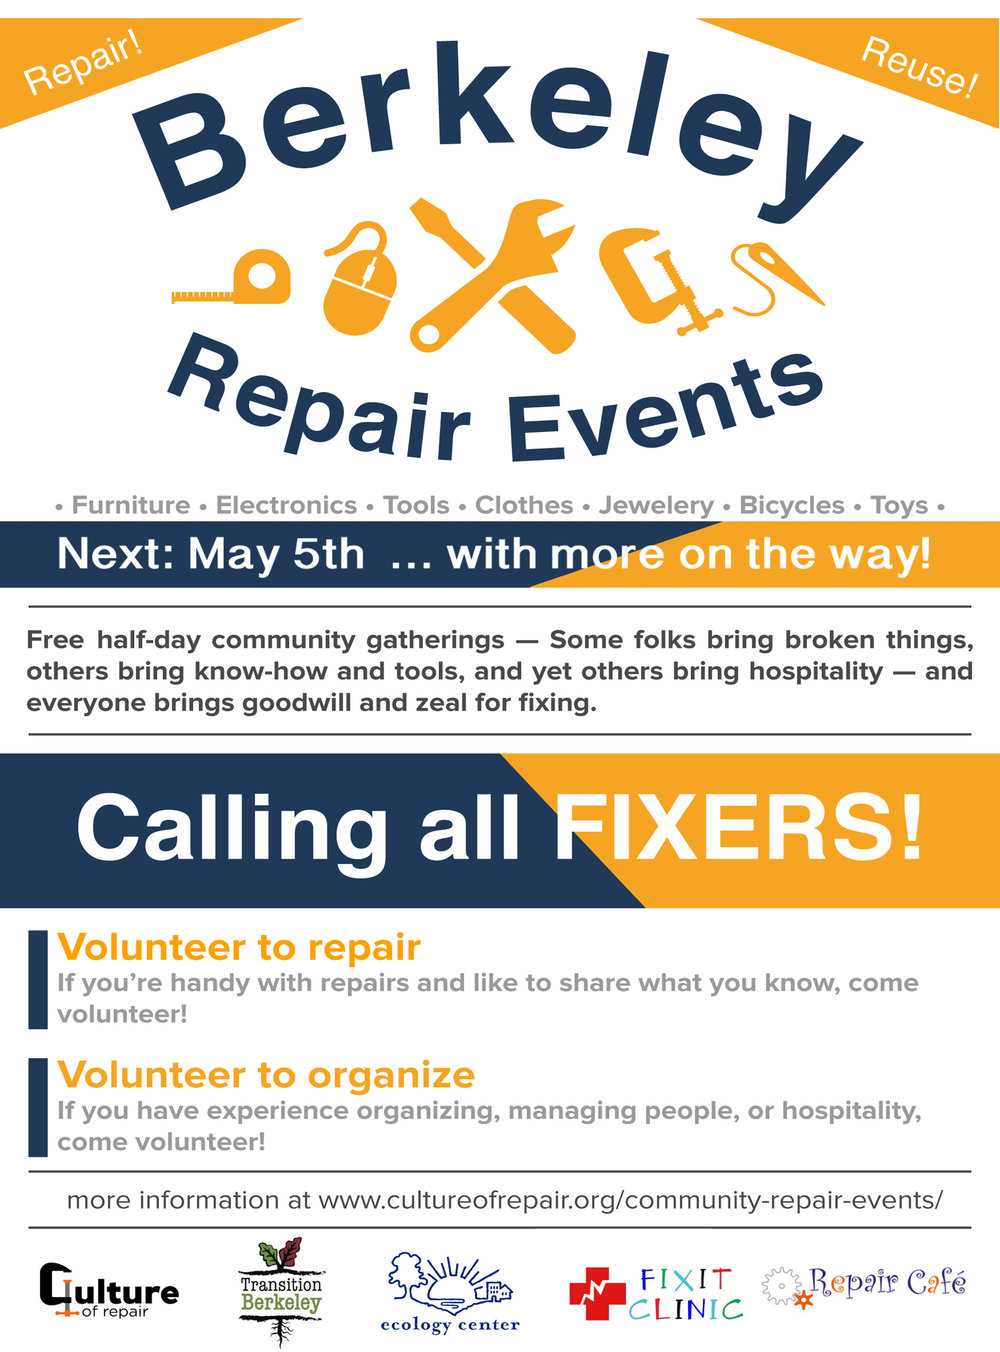 Calling All Fixers!